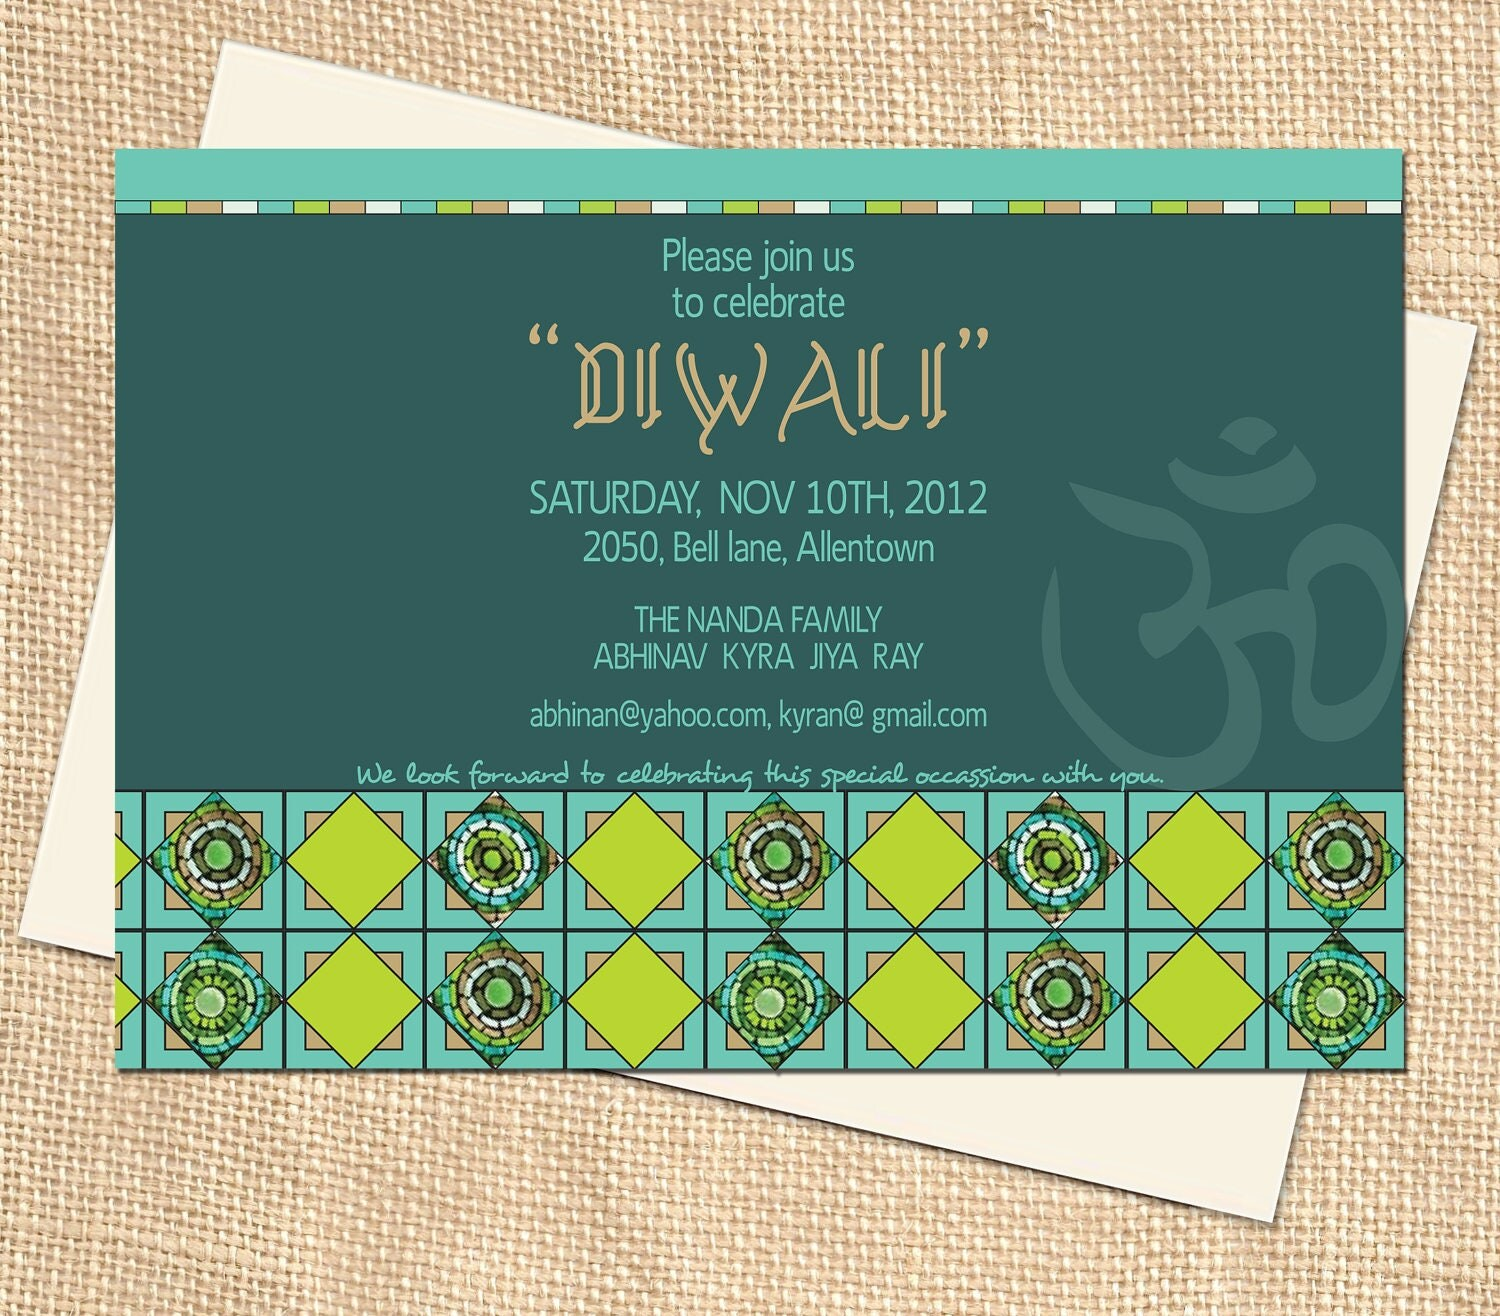 Diwali Invitation Cards For Party is beautiful invitation template